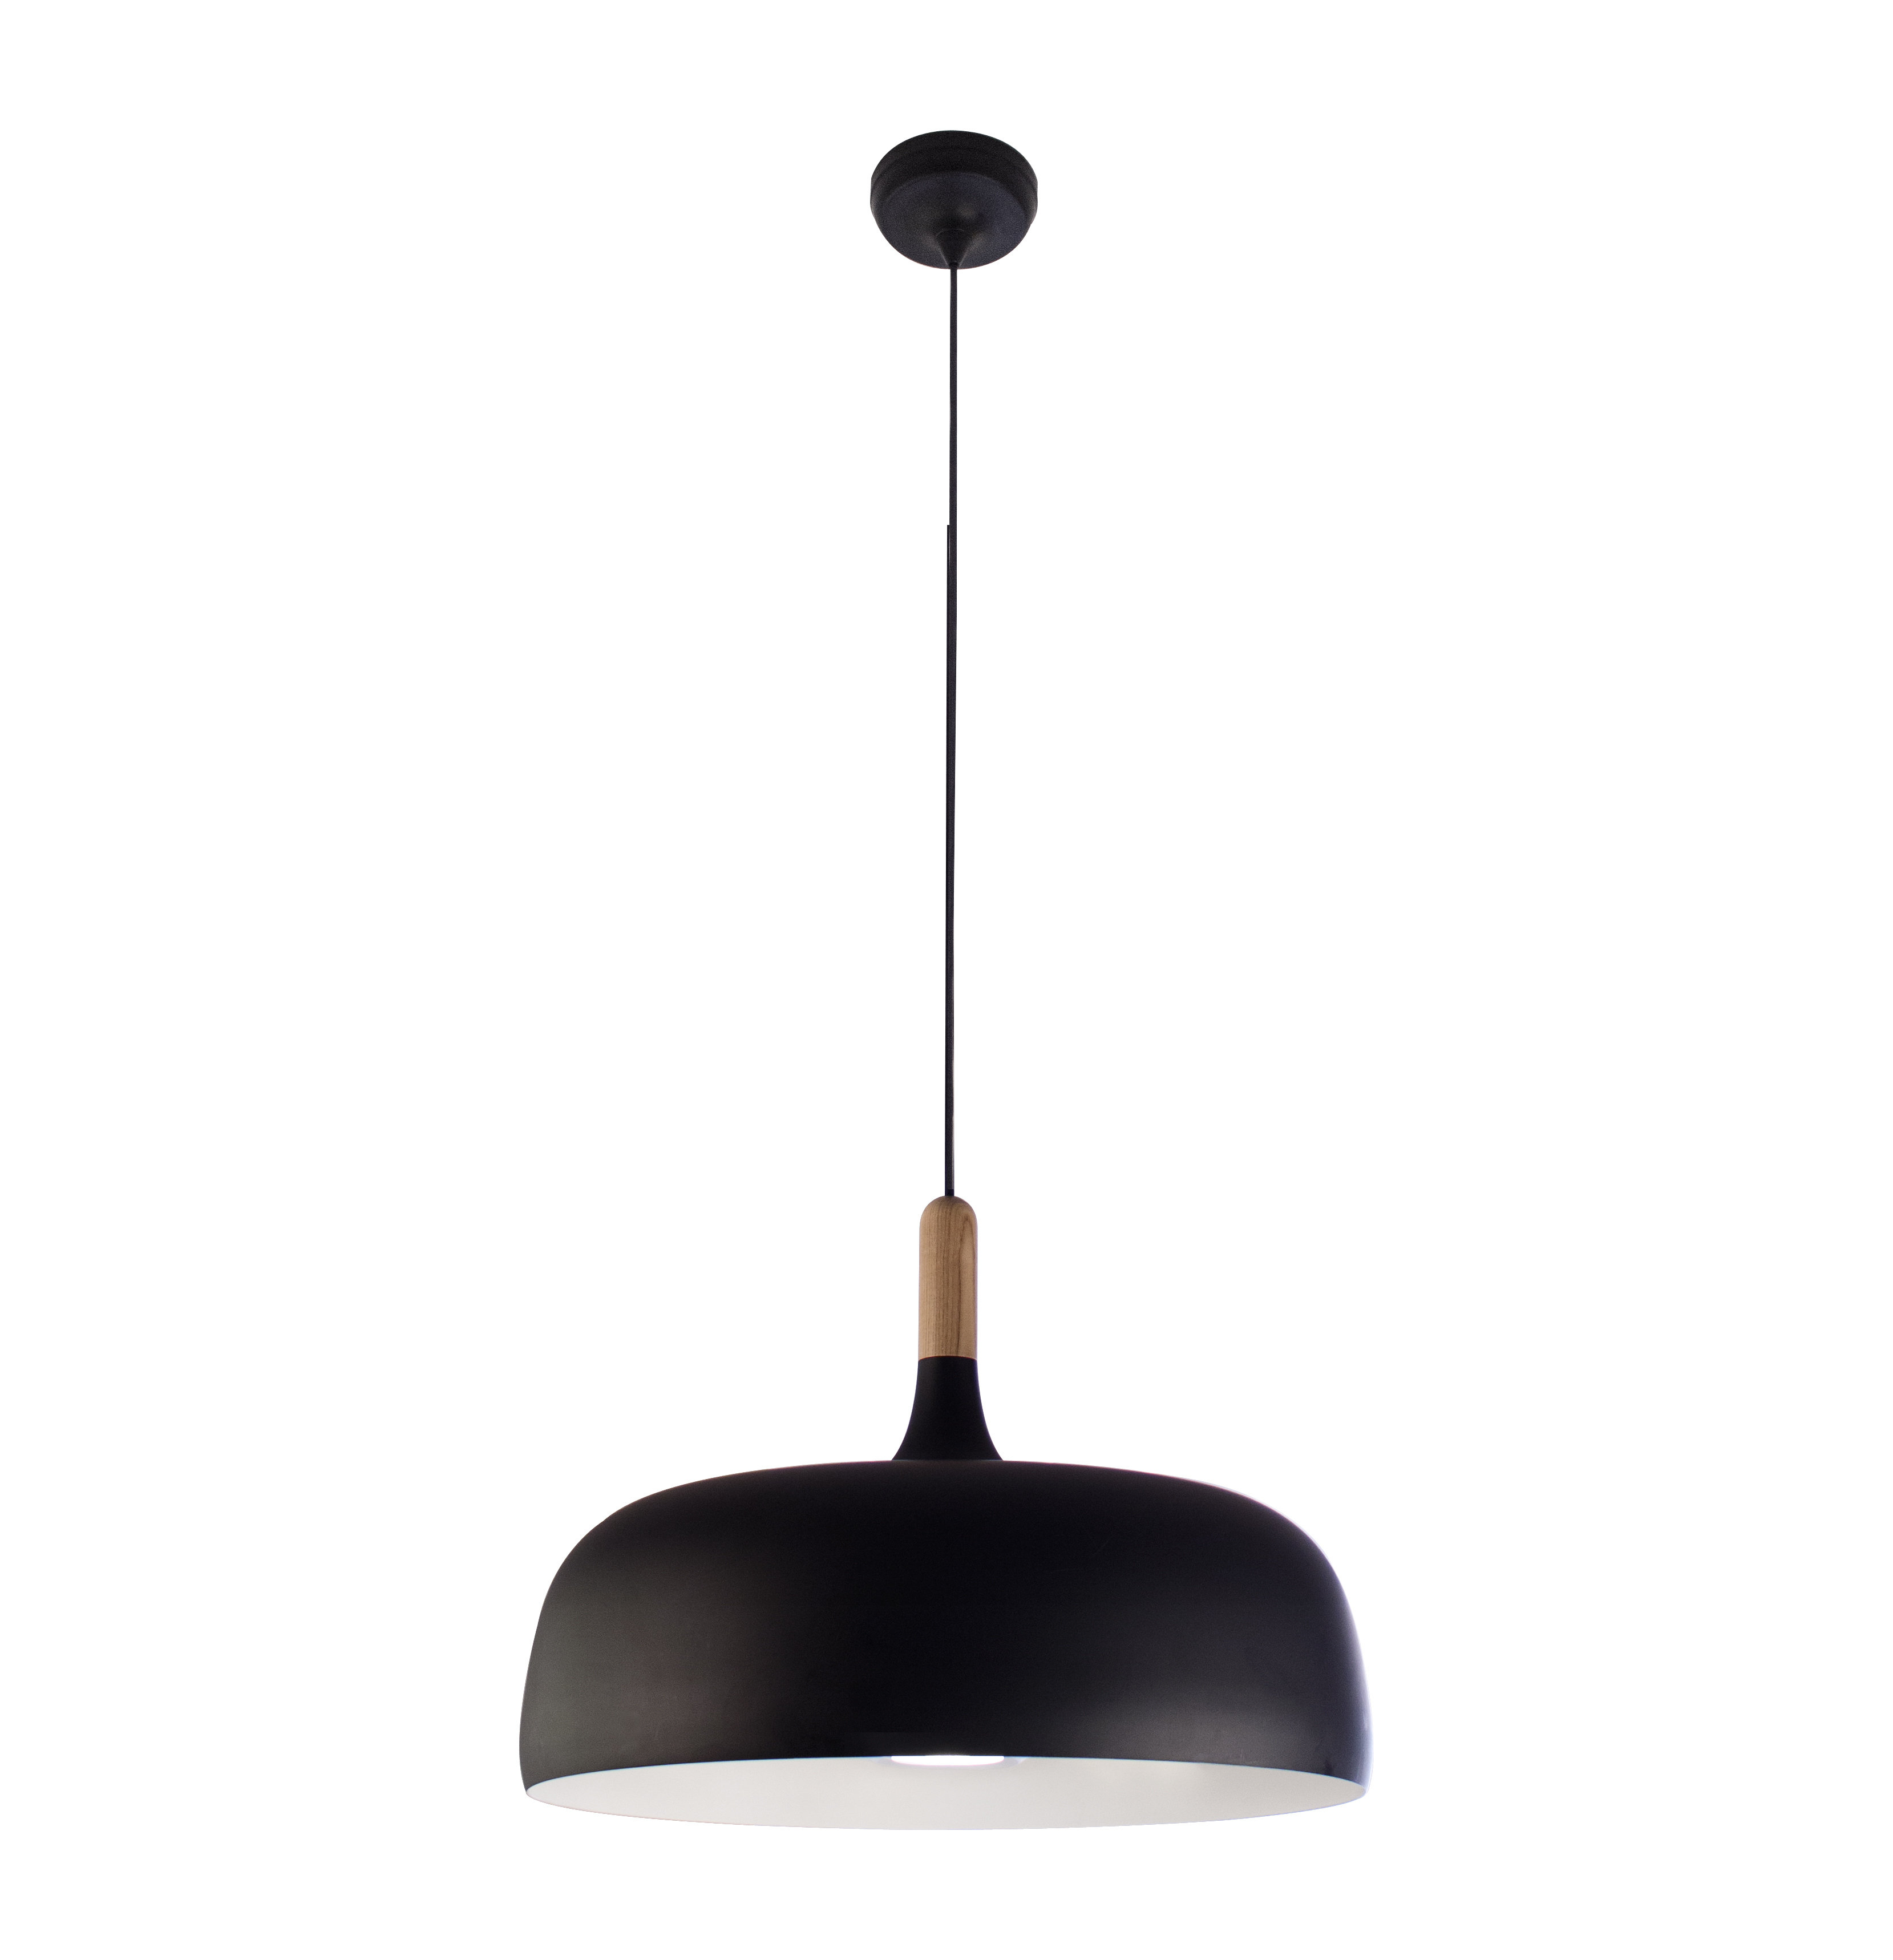 Ryker 1 Light Single Dome Pendant Pertaining To Ryker 1 Light Single Dome Pendants (Gallery 1 of 30)